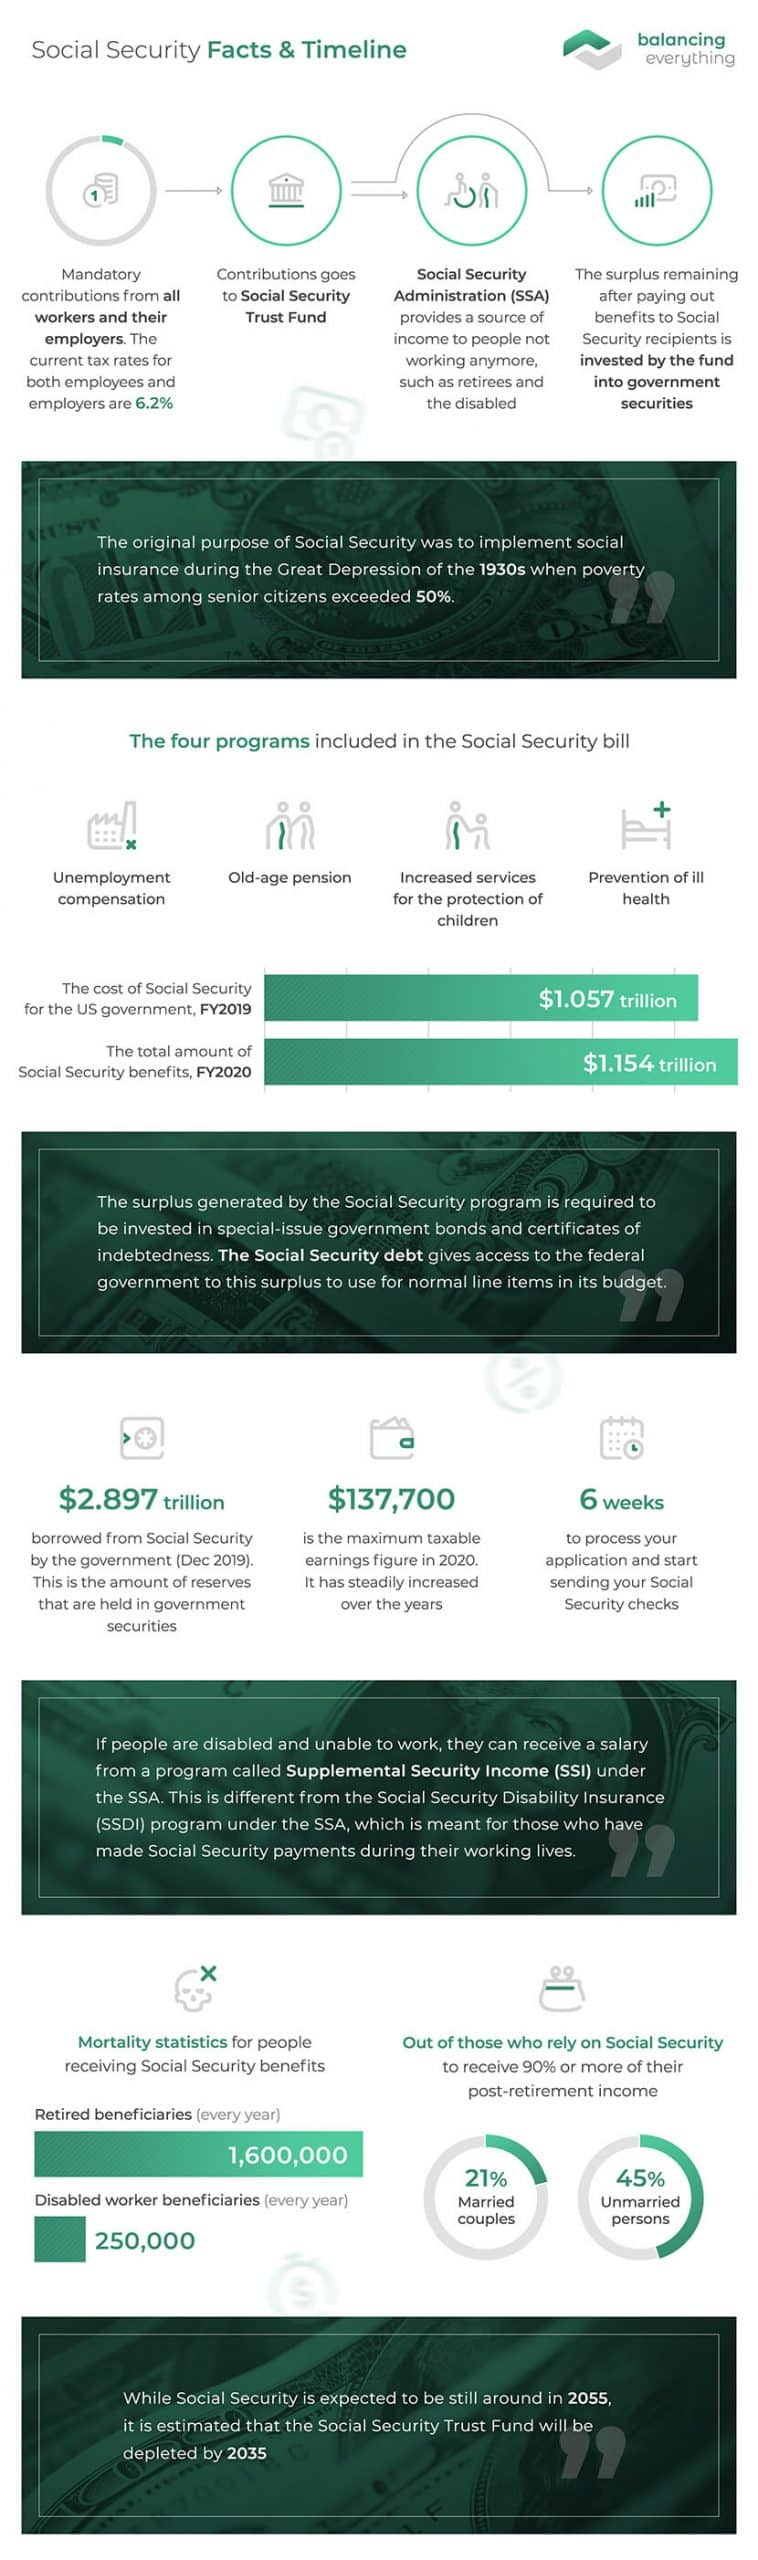 Social Security Facts & Timeline